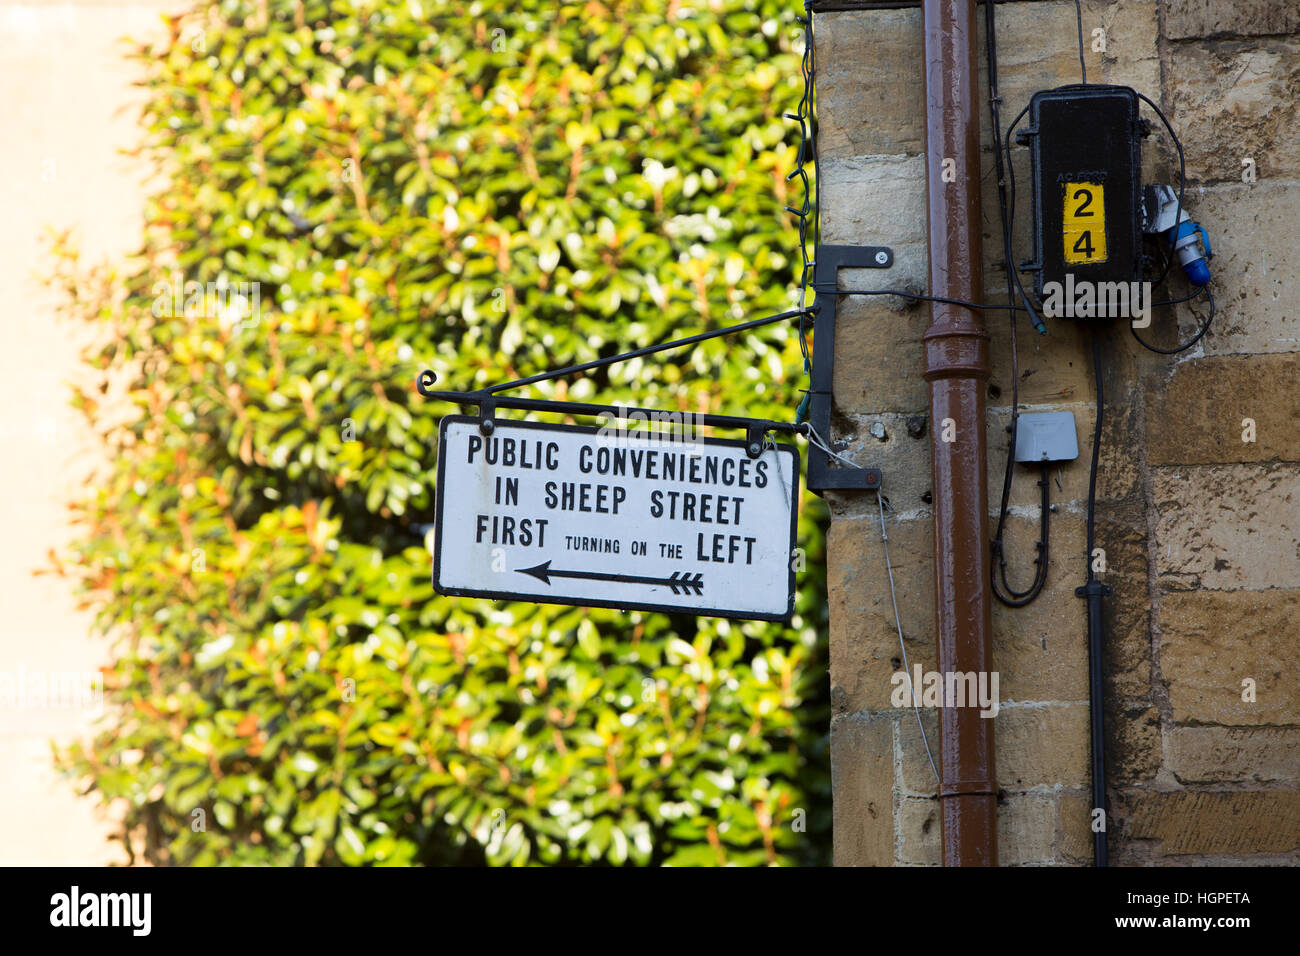 sign for public conveniences toilets in Chipping Campden high street, market town in the Cotswolds,Gloucestershire,England - Stock Image